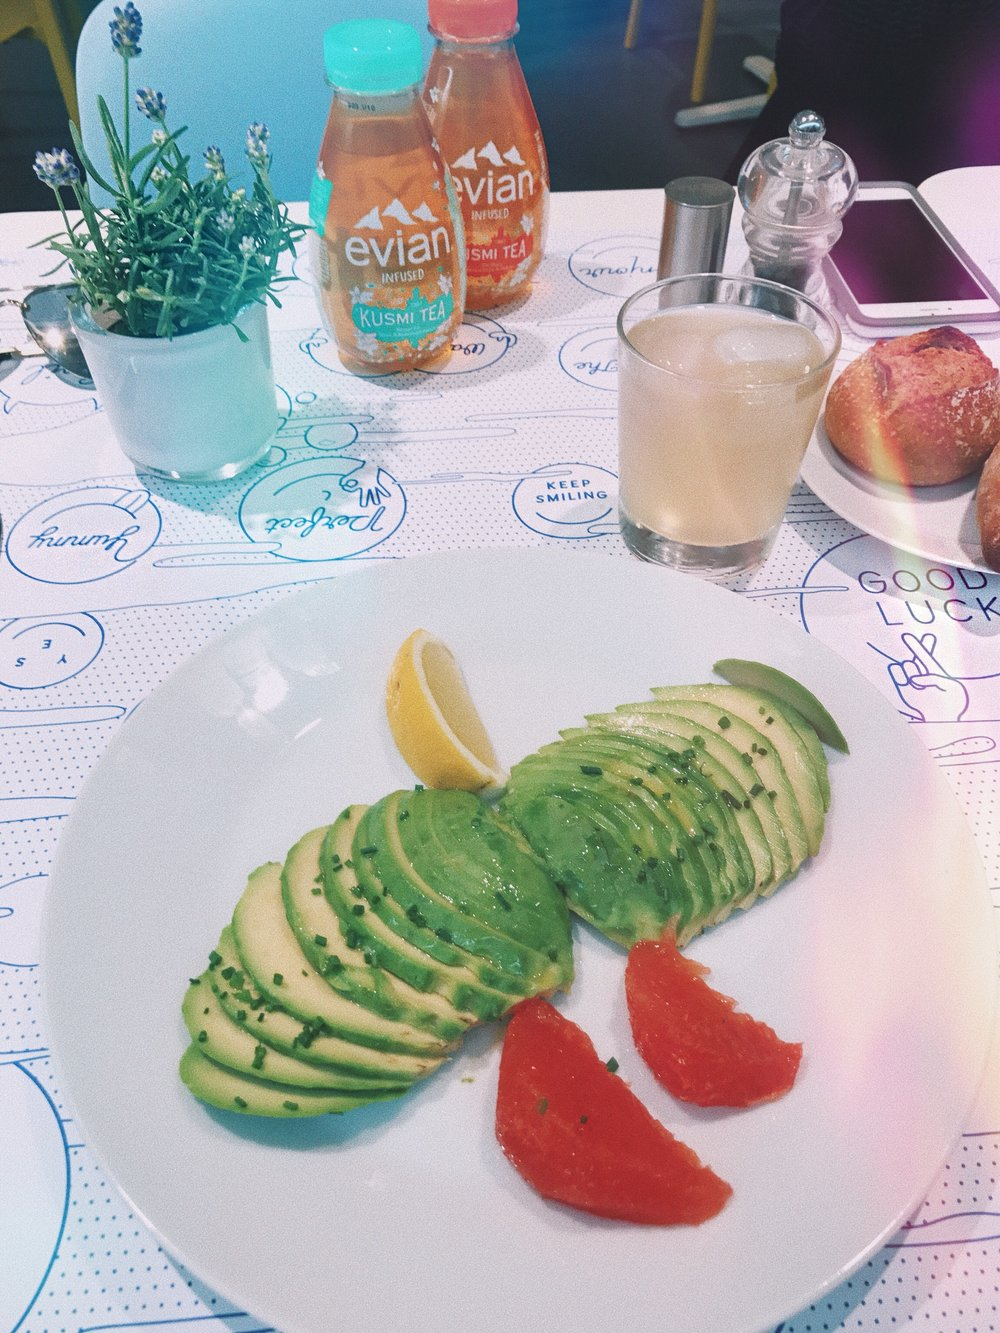 colette paris - healthy eats at colette paris! RIP. so happy I was able to see the iconic place before it closed.